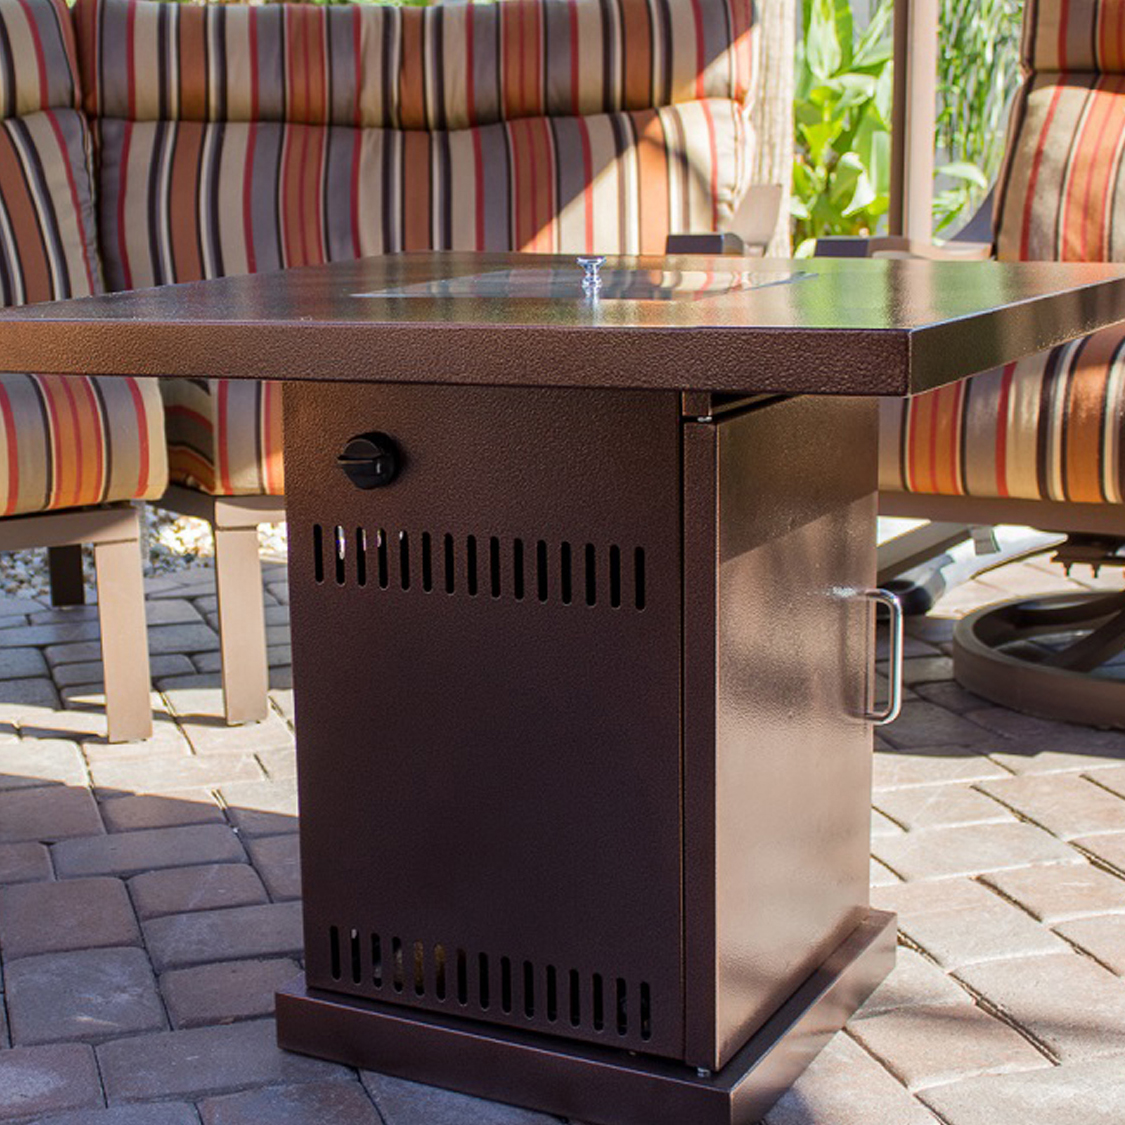 Outdoor Coffee Table Heater: Patio Heater Table Fire Pit Outdoor Backyard Propane